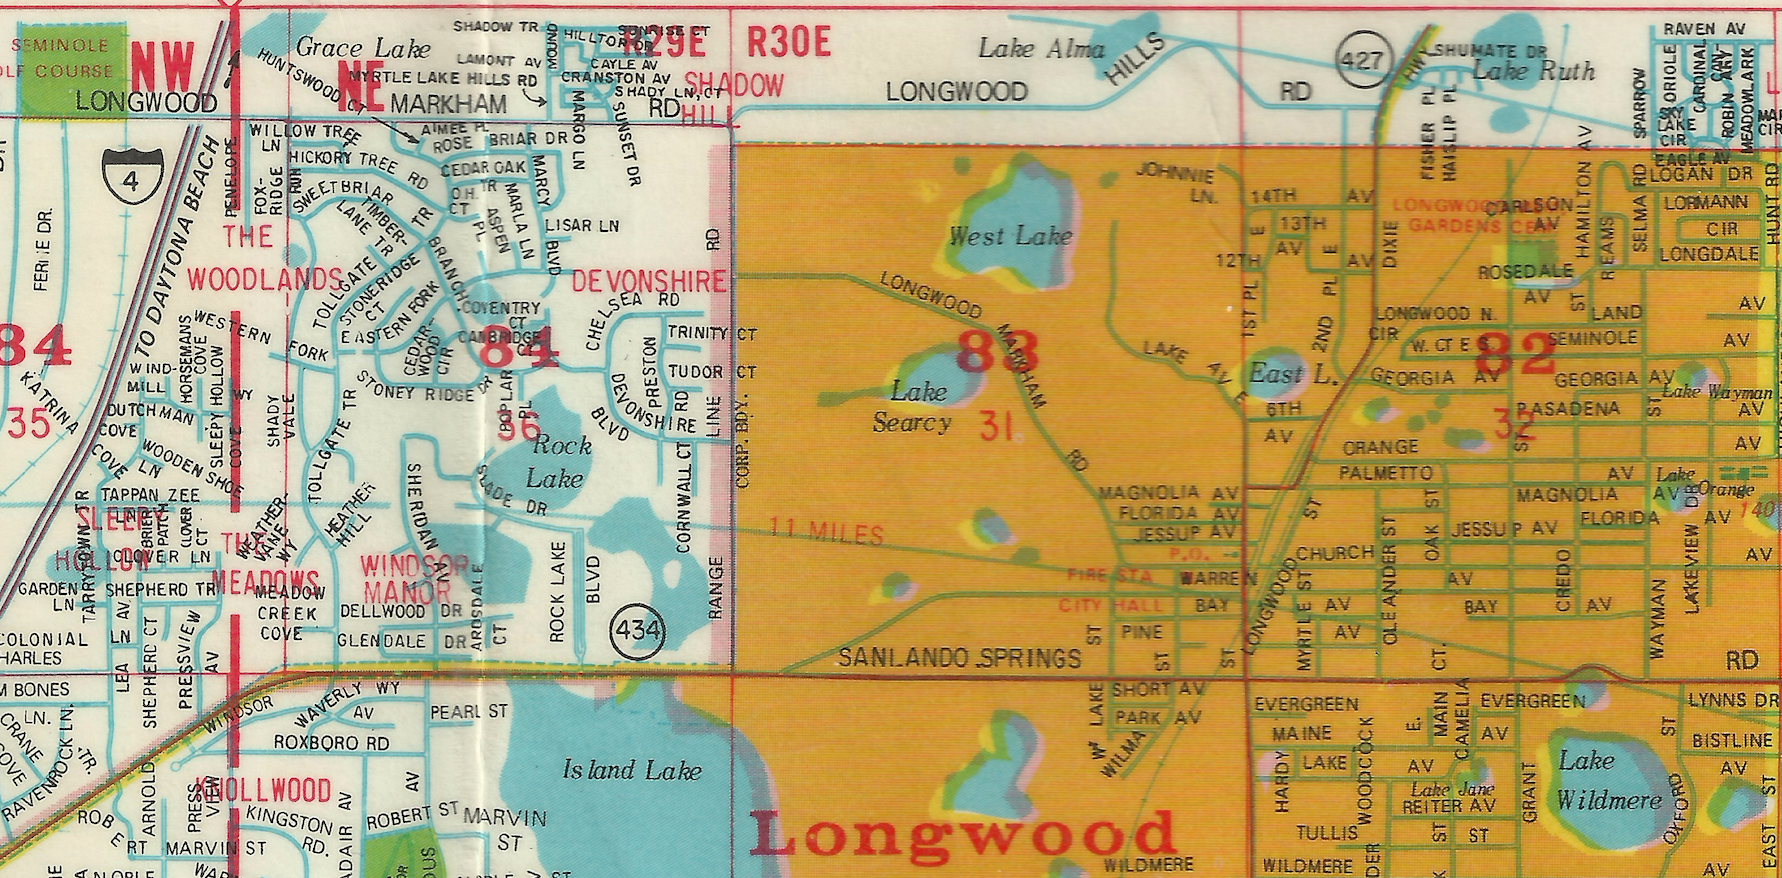 This map from around 1971 still shows both this section of Church and EE Williamson road to be Longwood-Markham Road.